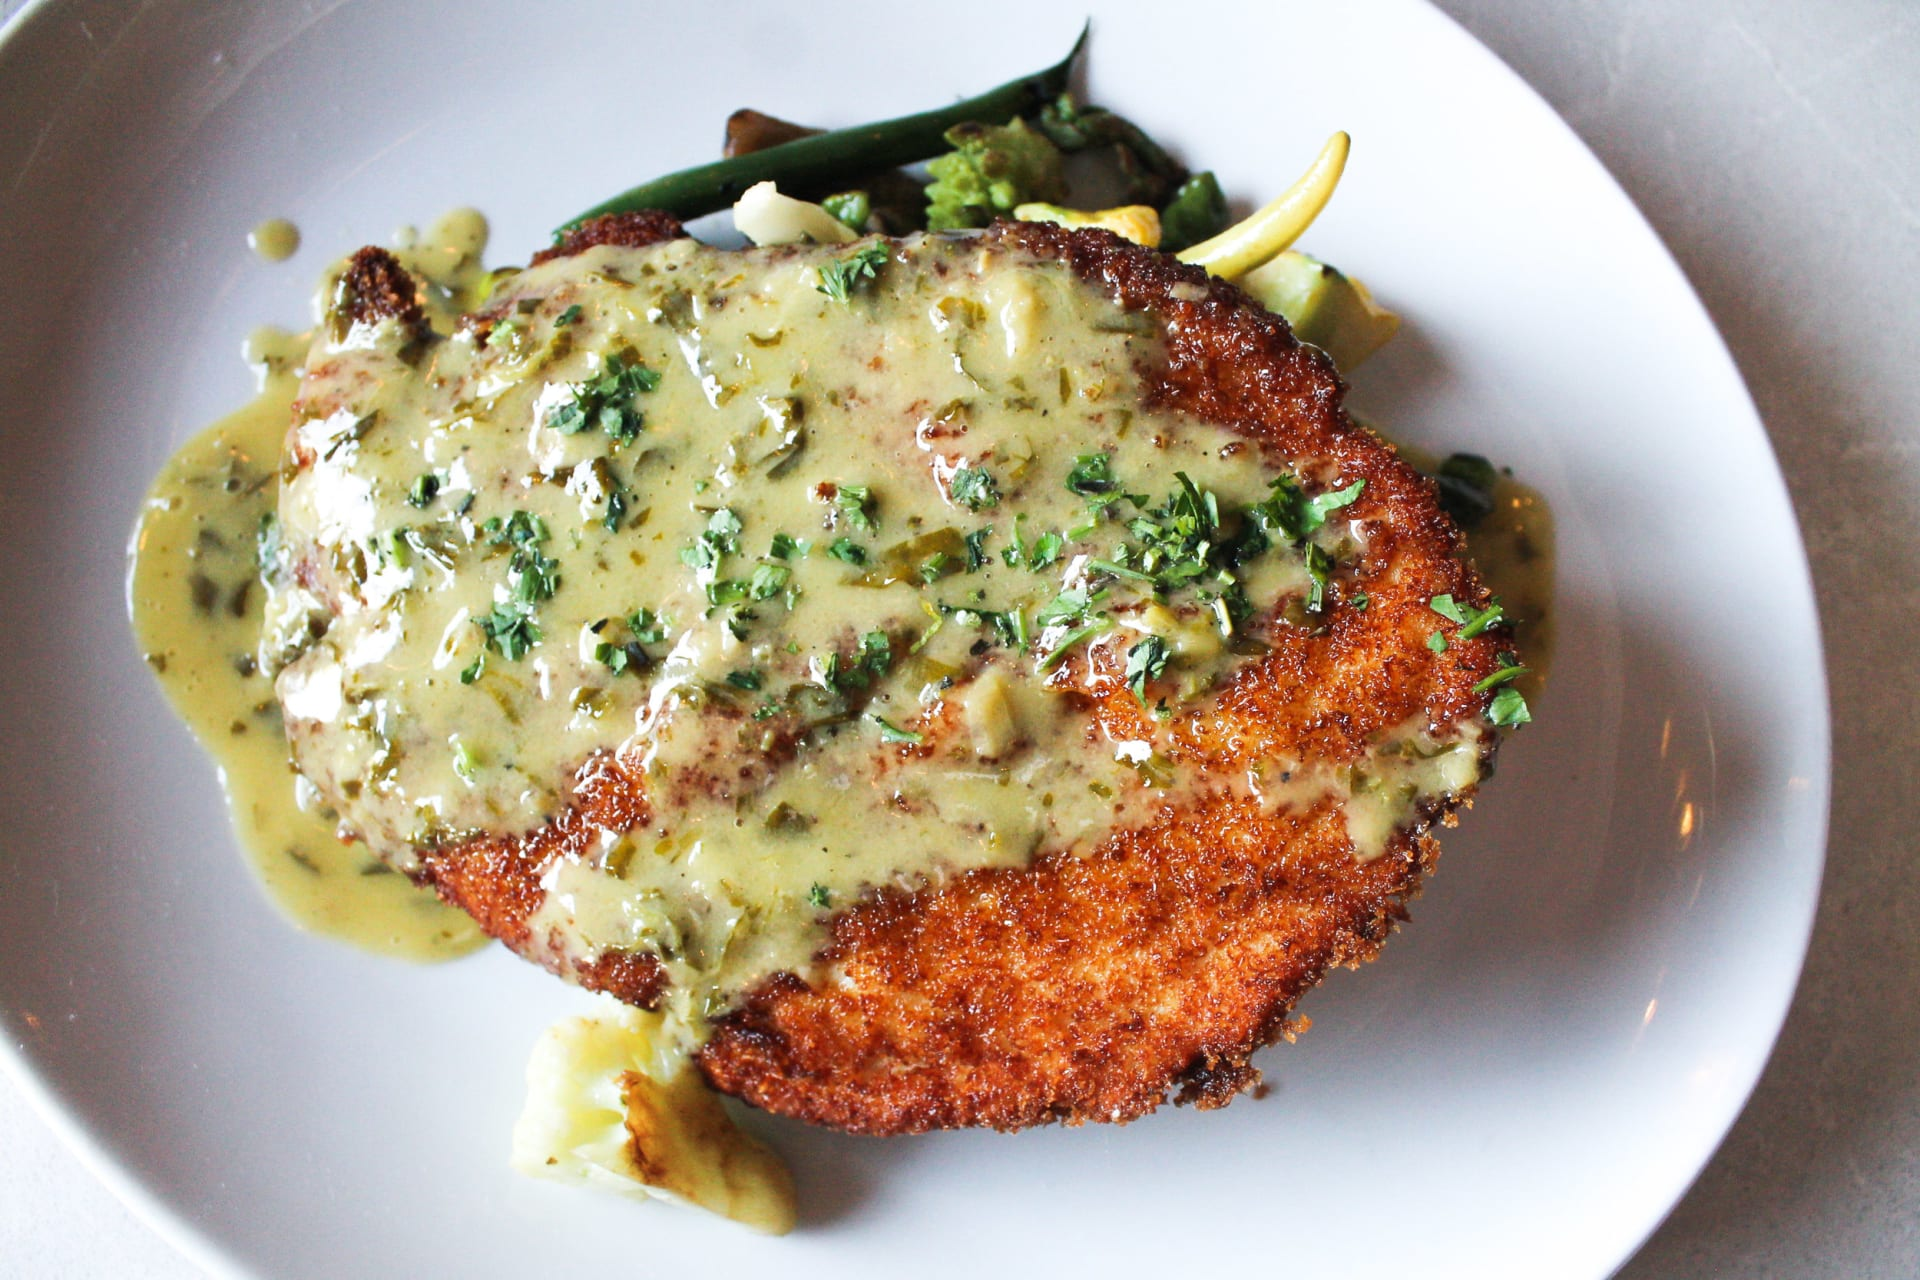 Crispy Jidori Chicken Schnitzel With Wild Mushrooms